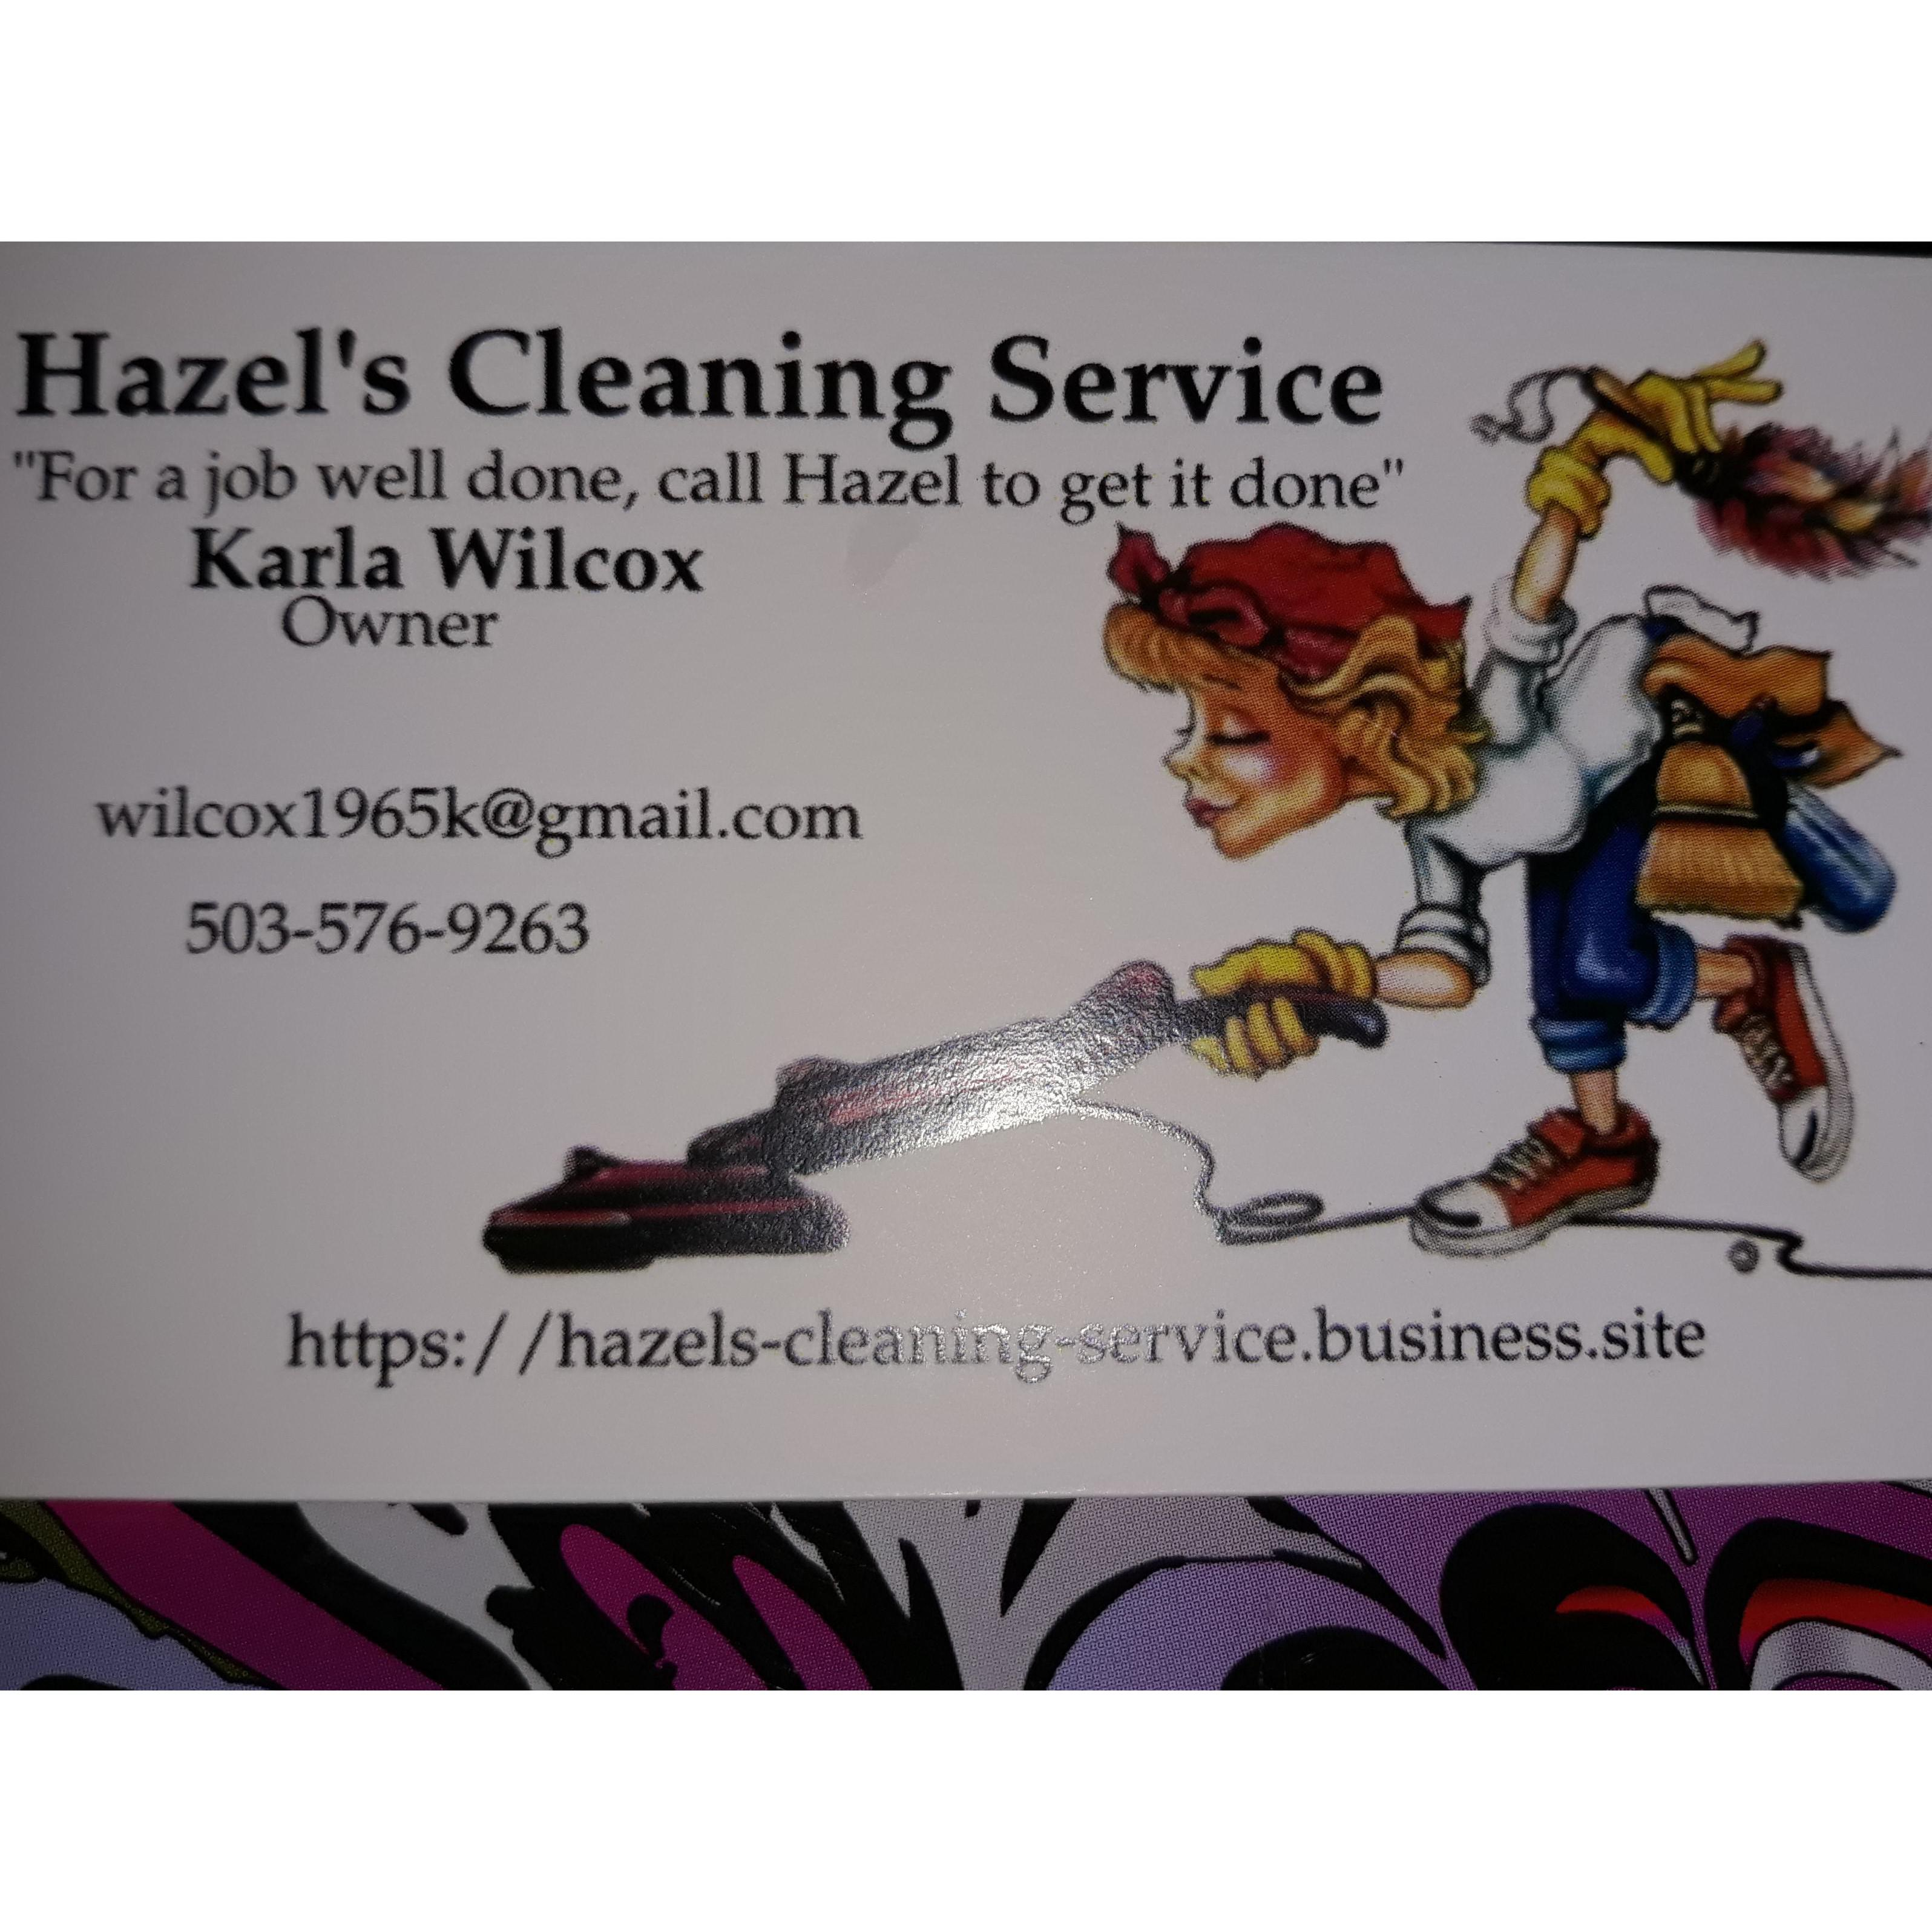 HAZEL'S CLEANING SERVICE